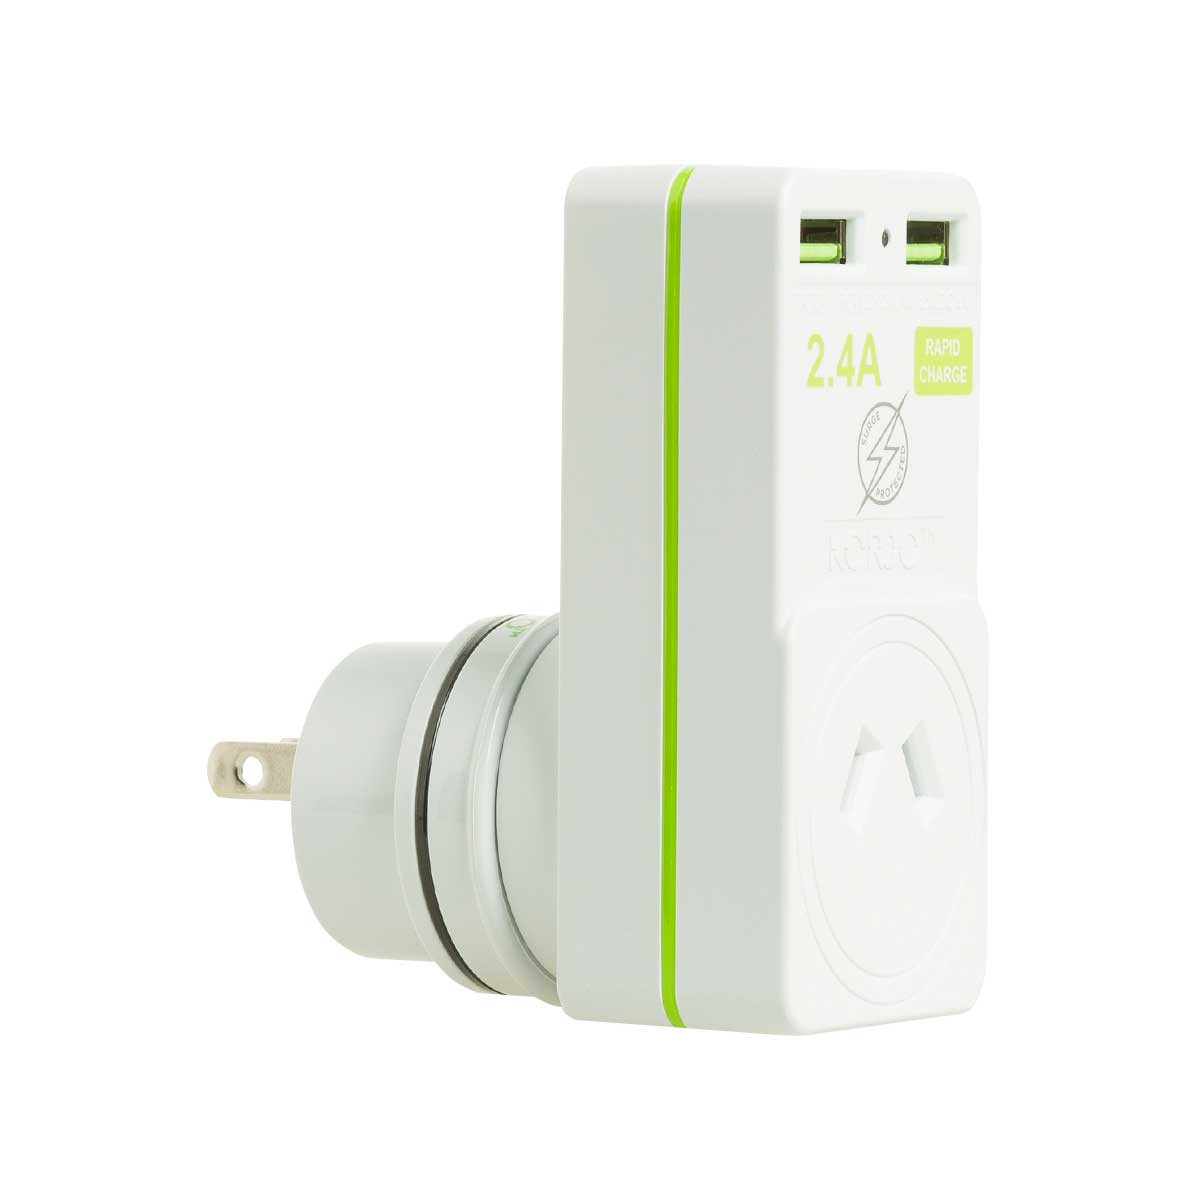 Korjo 2 port USB charger and adaptor Australia and NZ to Japan